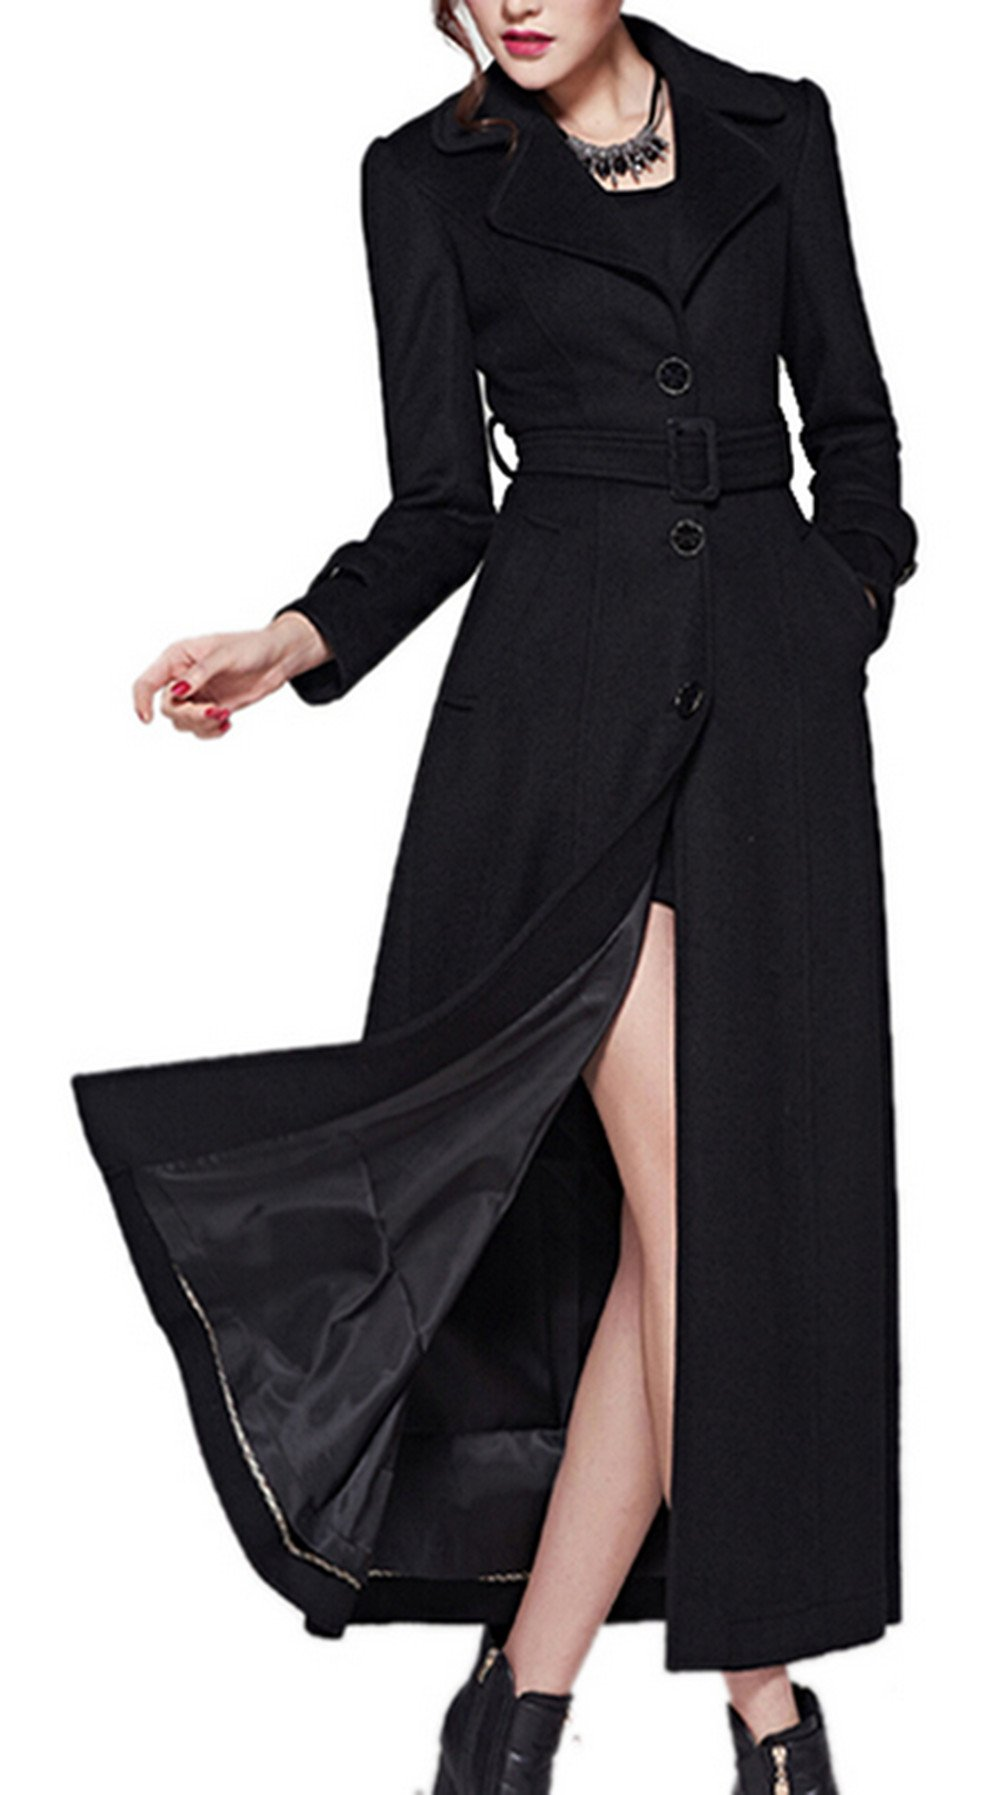 Women's Full-Length Sing-Breasted Turn Down Collar Wool Coat with Belt Black 2XL